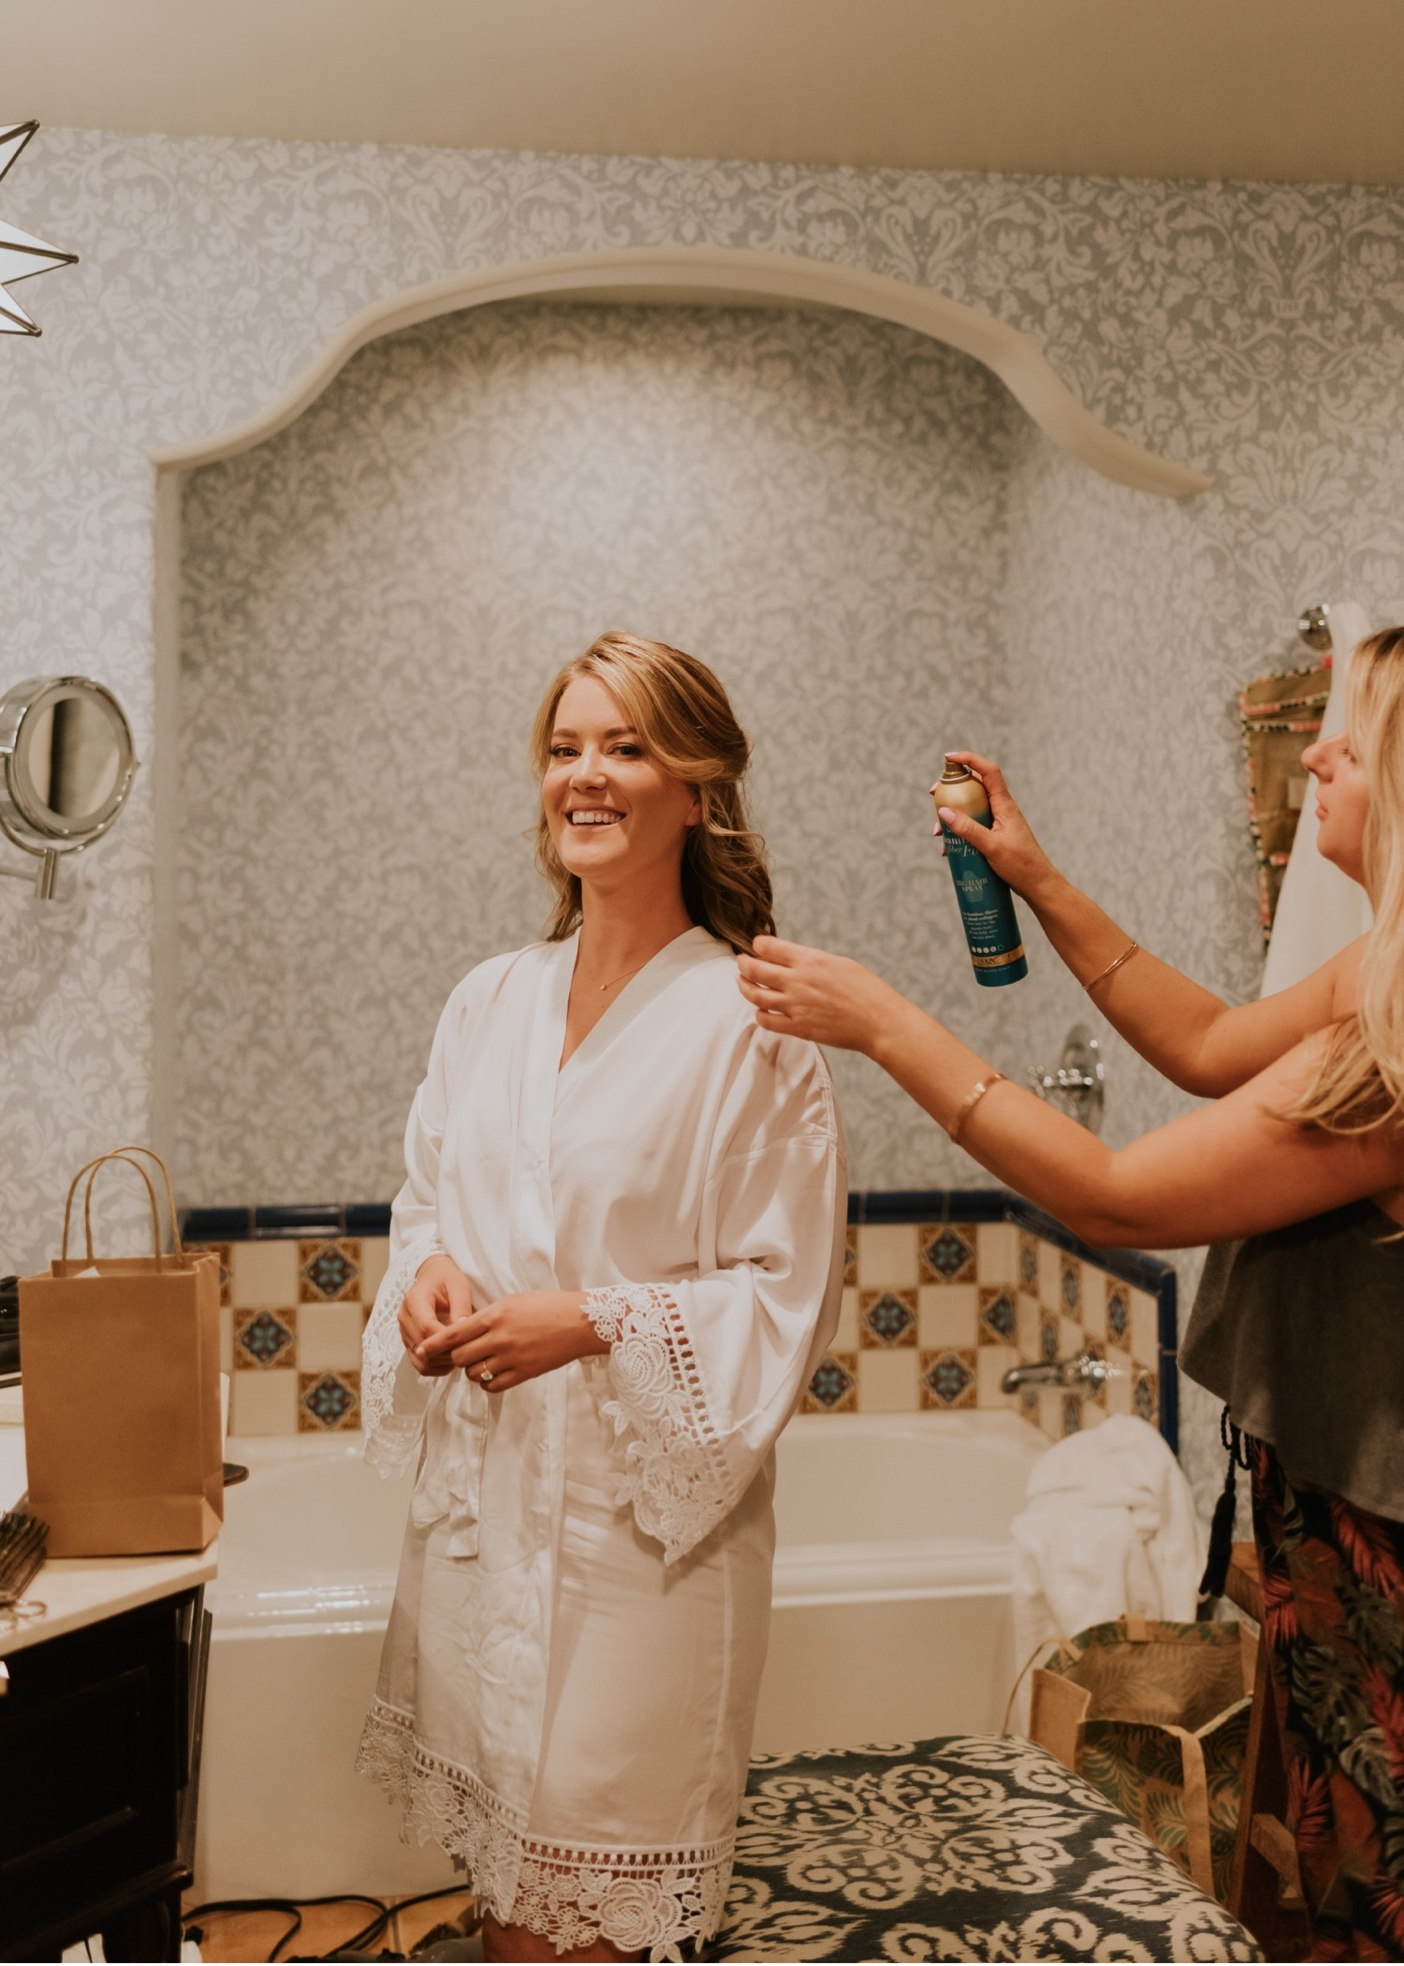 Bride reaction to wedding day makeup. Getting ready at Canary Hotel Santa Barbara.